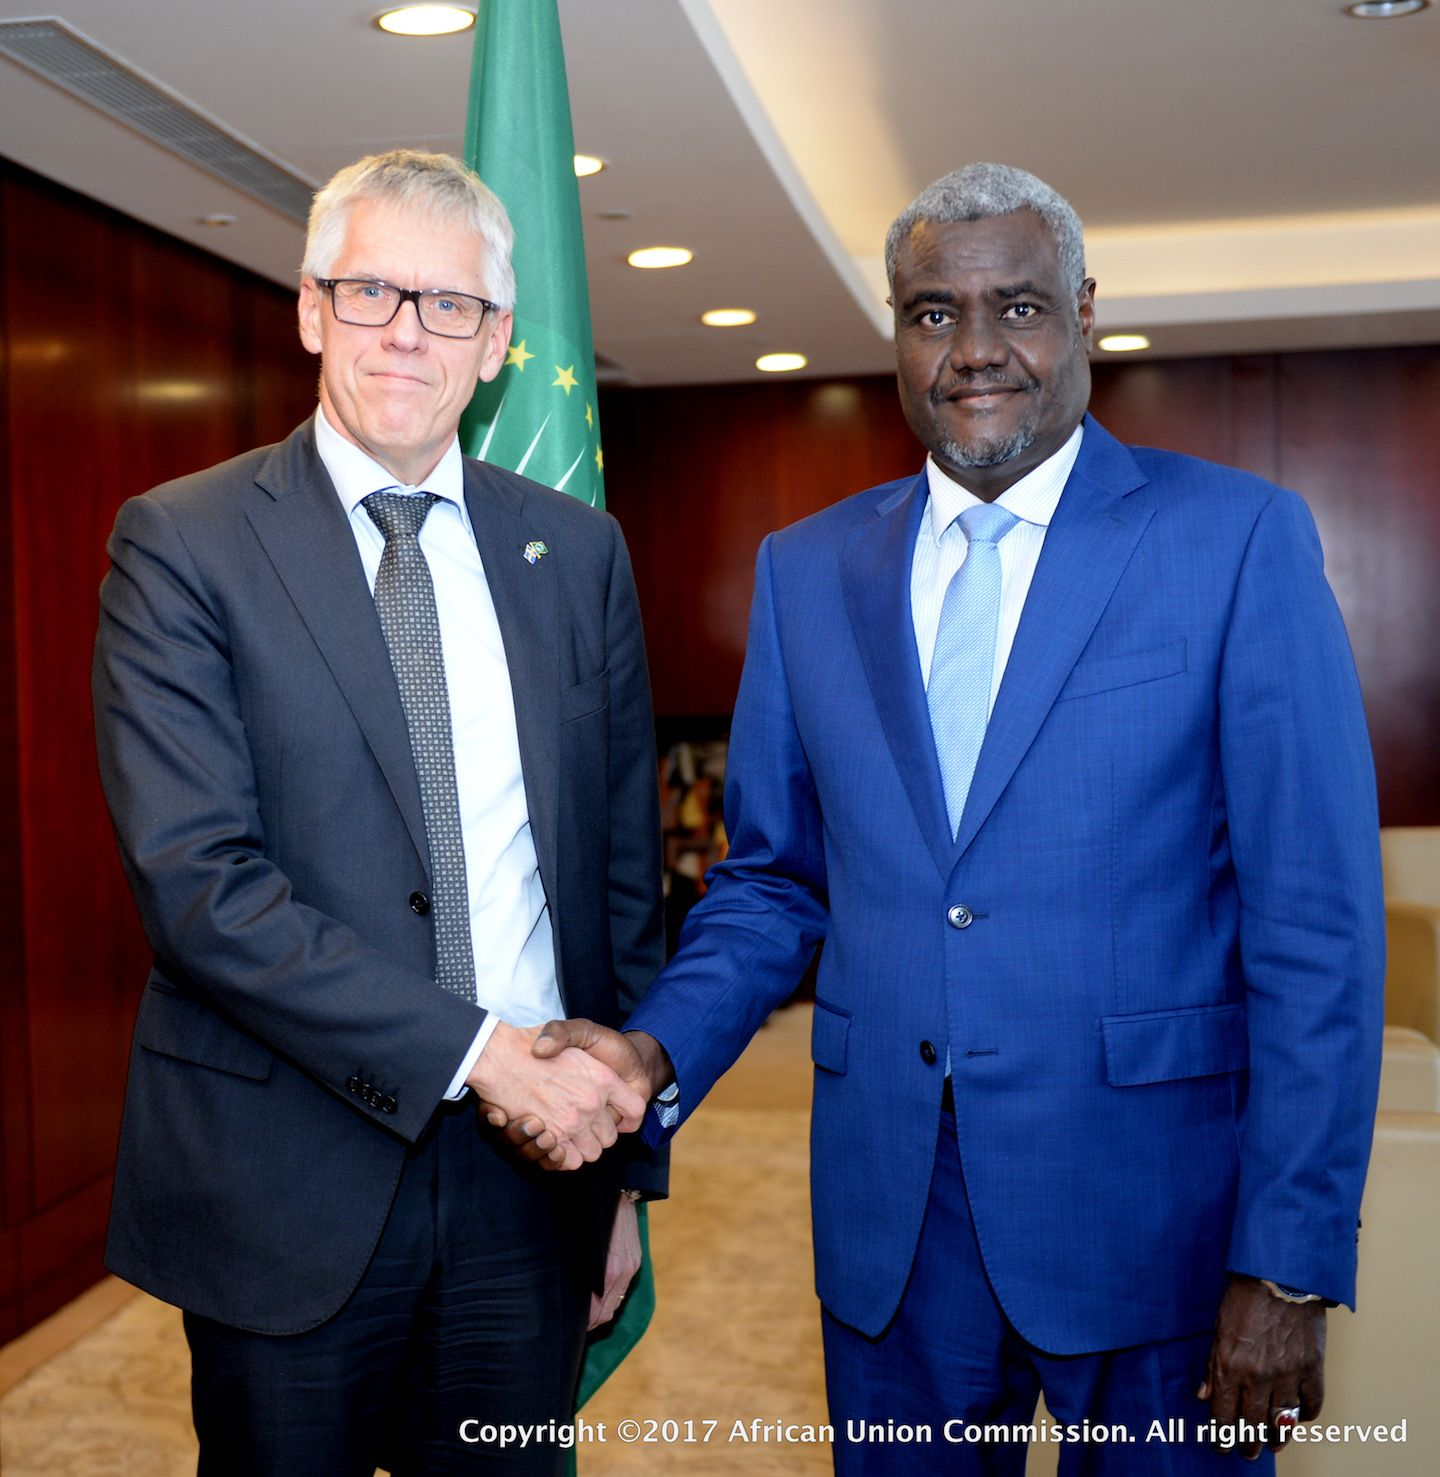 The Chairperson of the African Union Commission HE Moussa Faki Mahamat received the credentials of HE Torbjorn Pettersson, the incoming Swedish ambassador accredited to the African Union Commission.